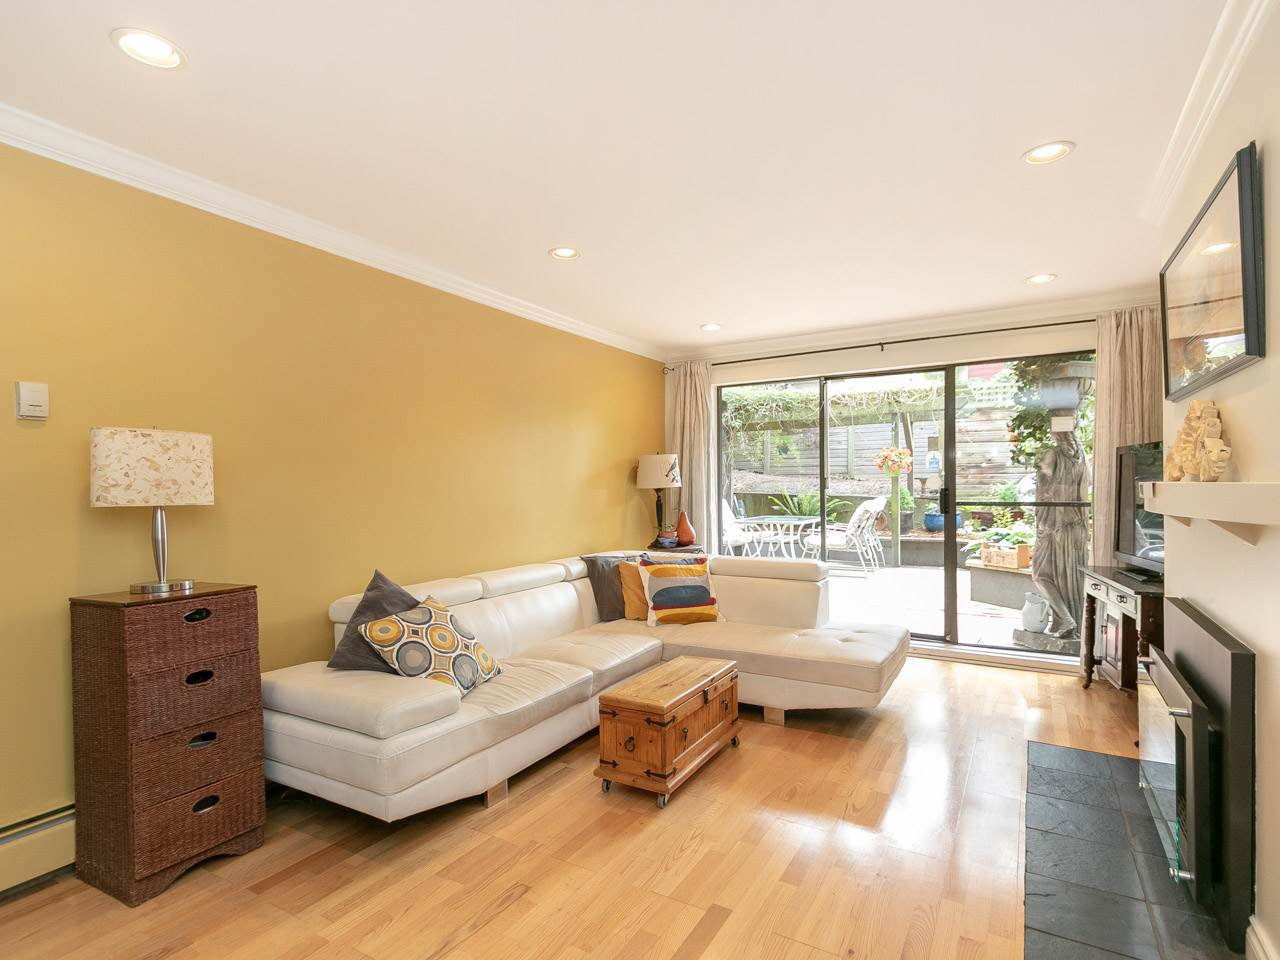 """Photo 4: Photos: 104 1516 CHARLES Street in Vancouver: Grandview VE Condo for sale in """"GARDEN TERRACE"""" (Vancouver East)  : MLS®# R2295886"""